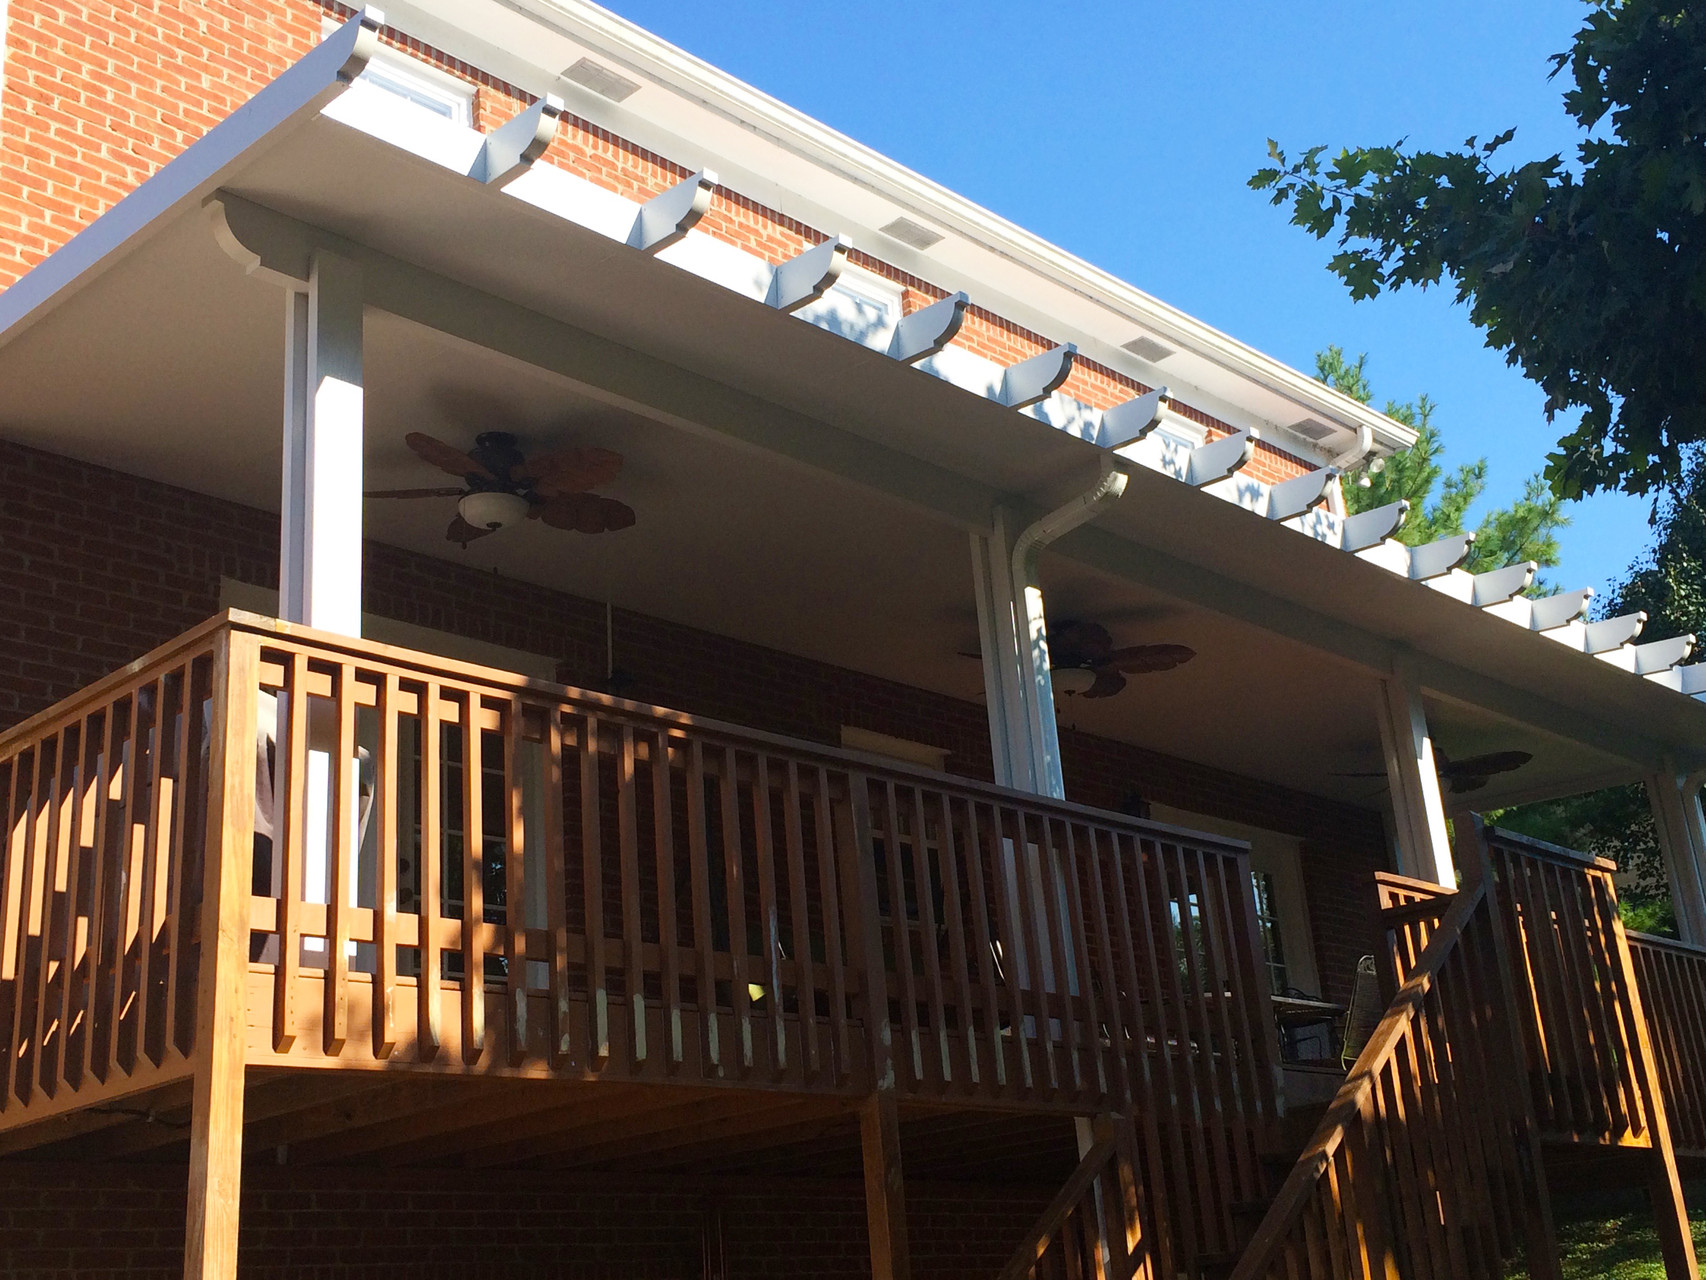 Thermavue Exteriors Patio Covers Carports Screenrooms Sunrooms Nashville TN Thermavue